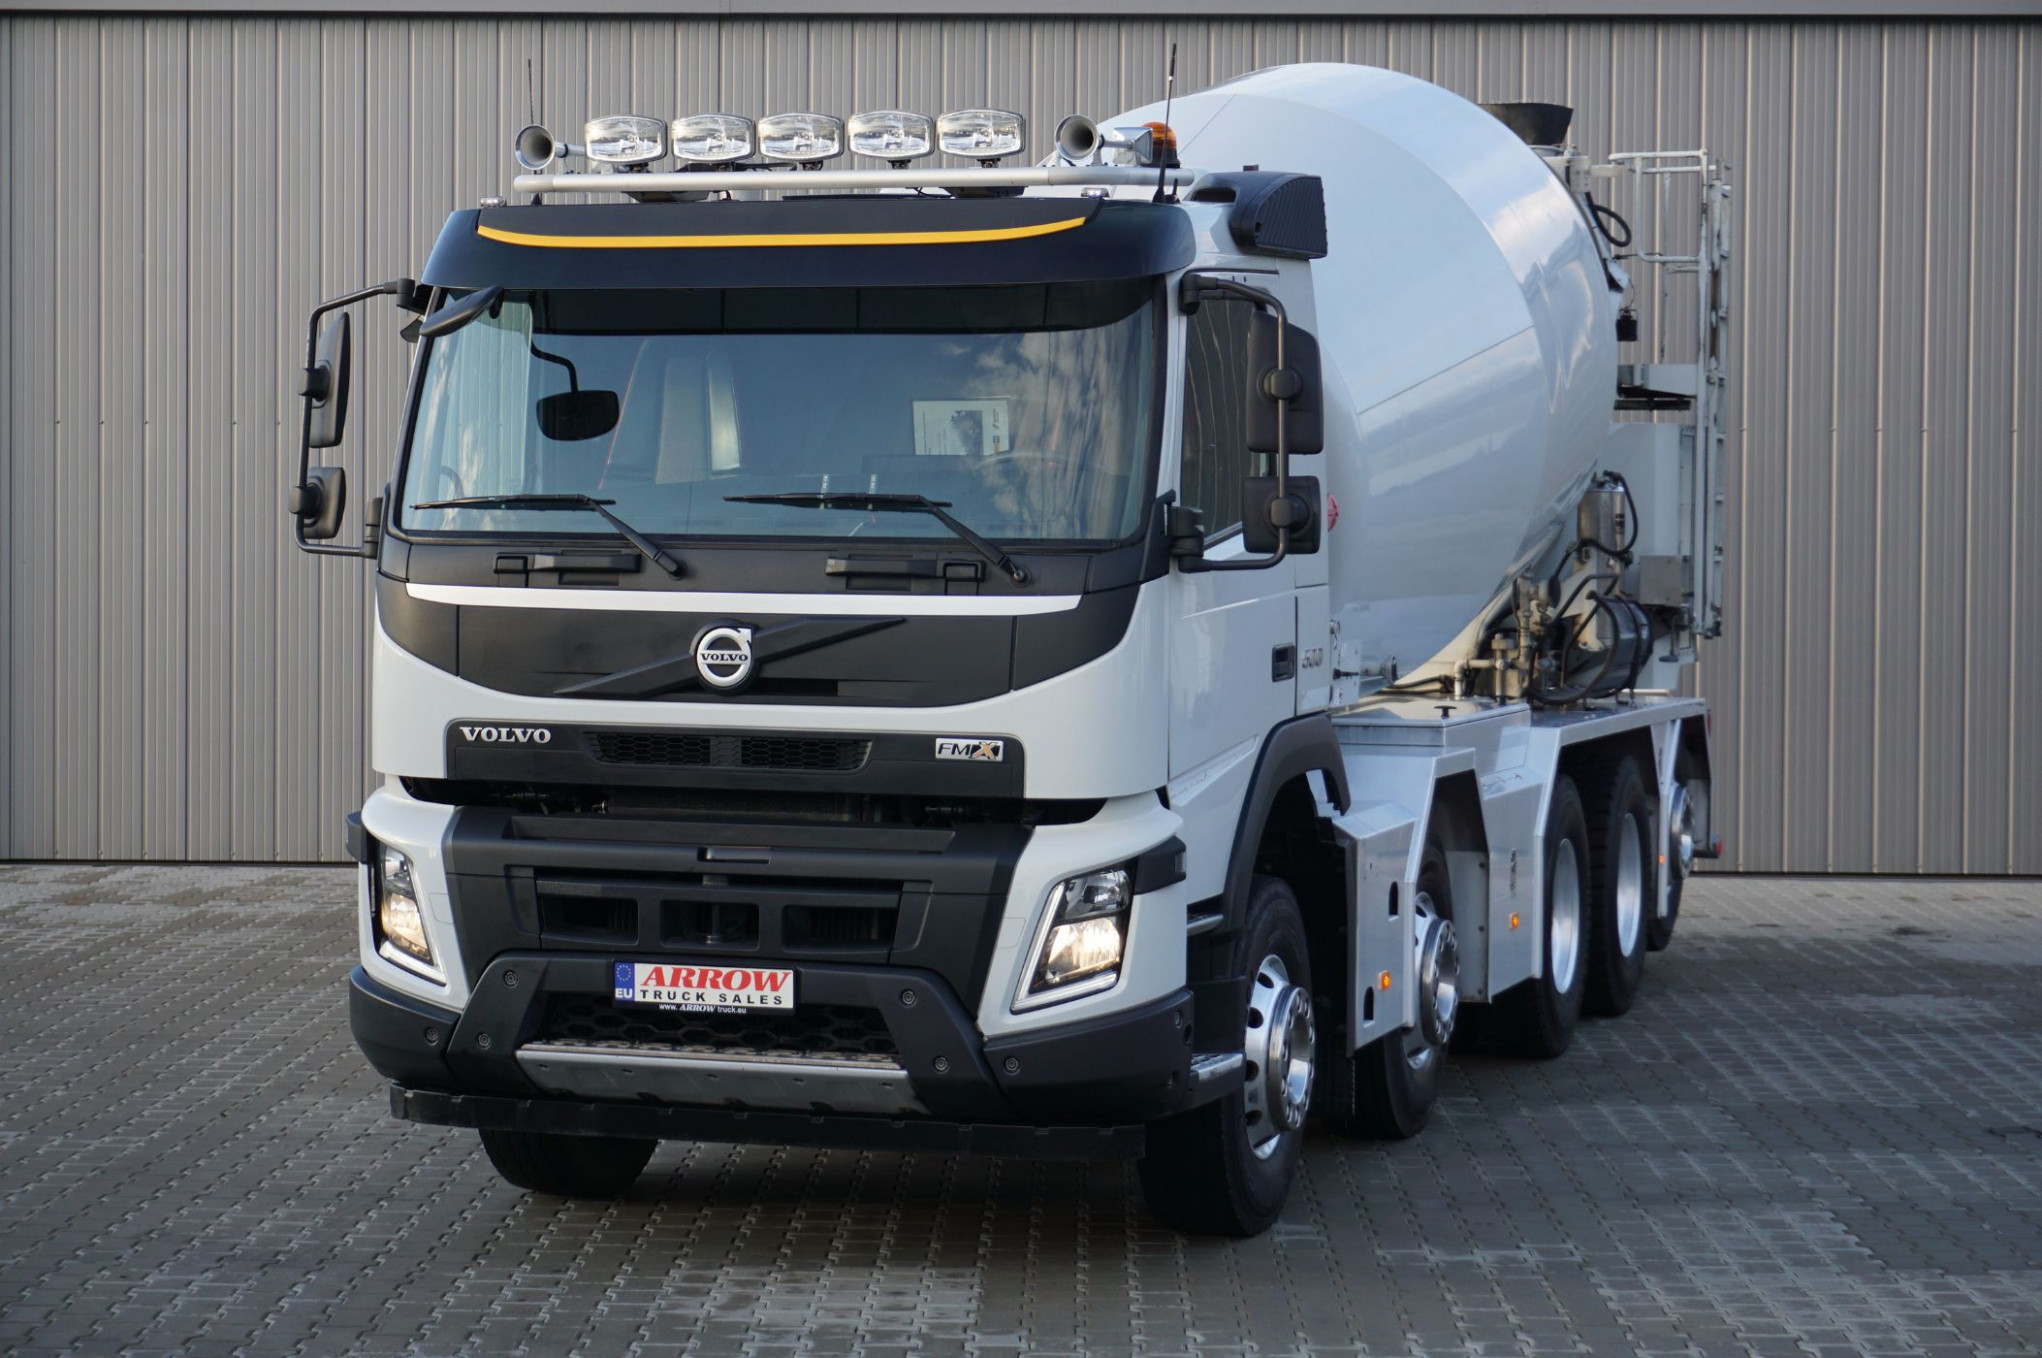 Truck Trader Online: All Makes, All Models at Arrow Truck Sales - 2020 volvo globetrotter for sale